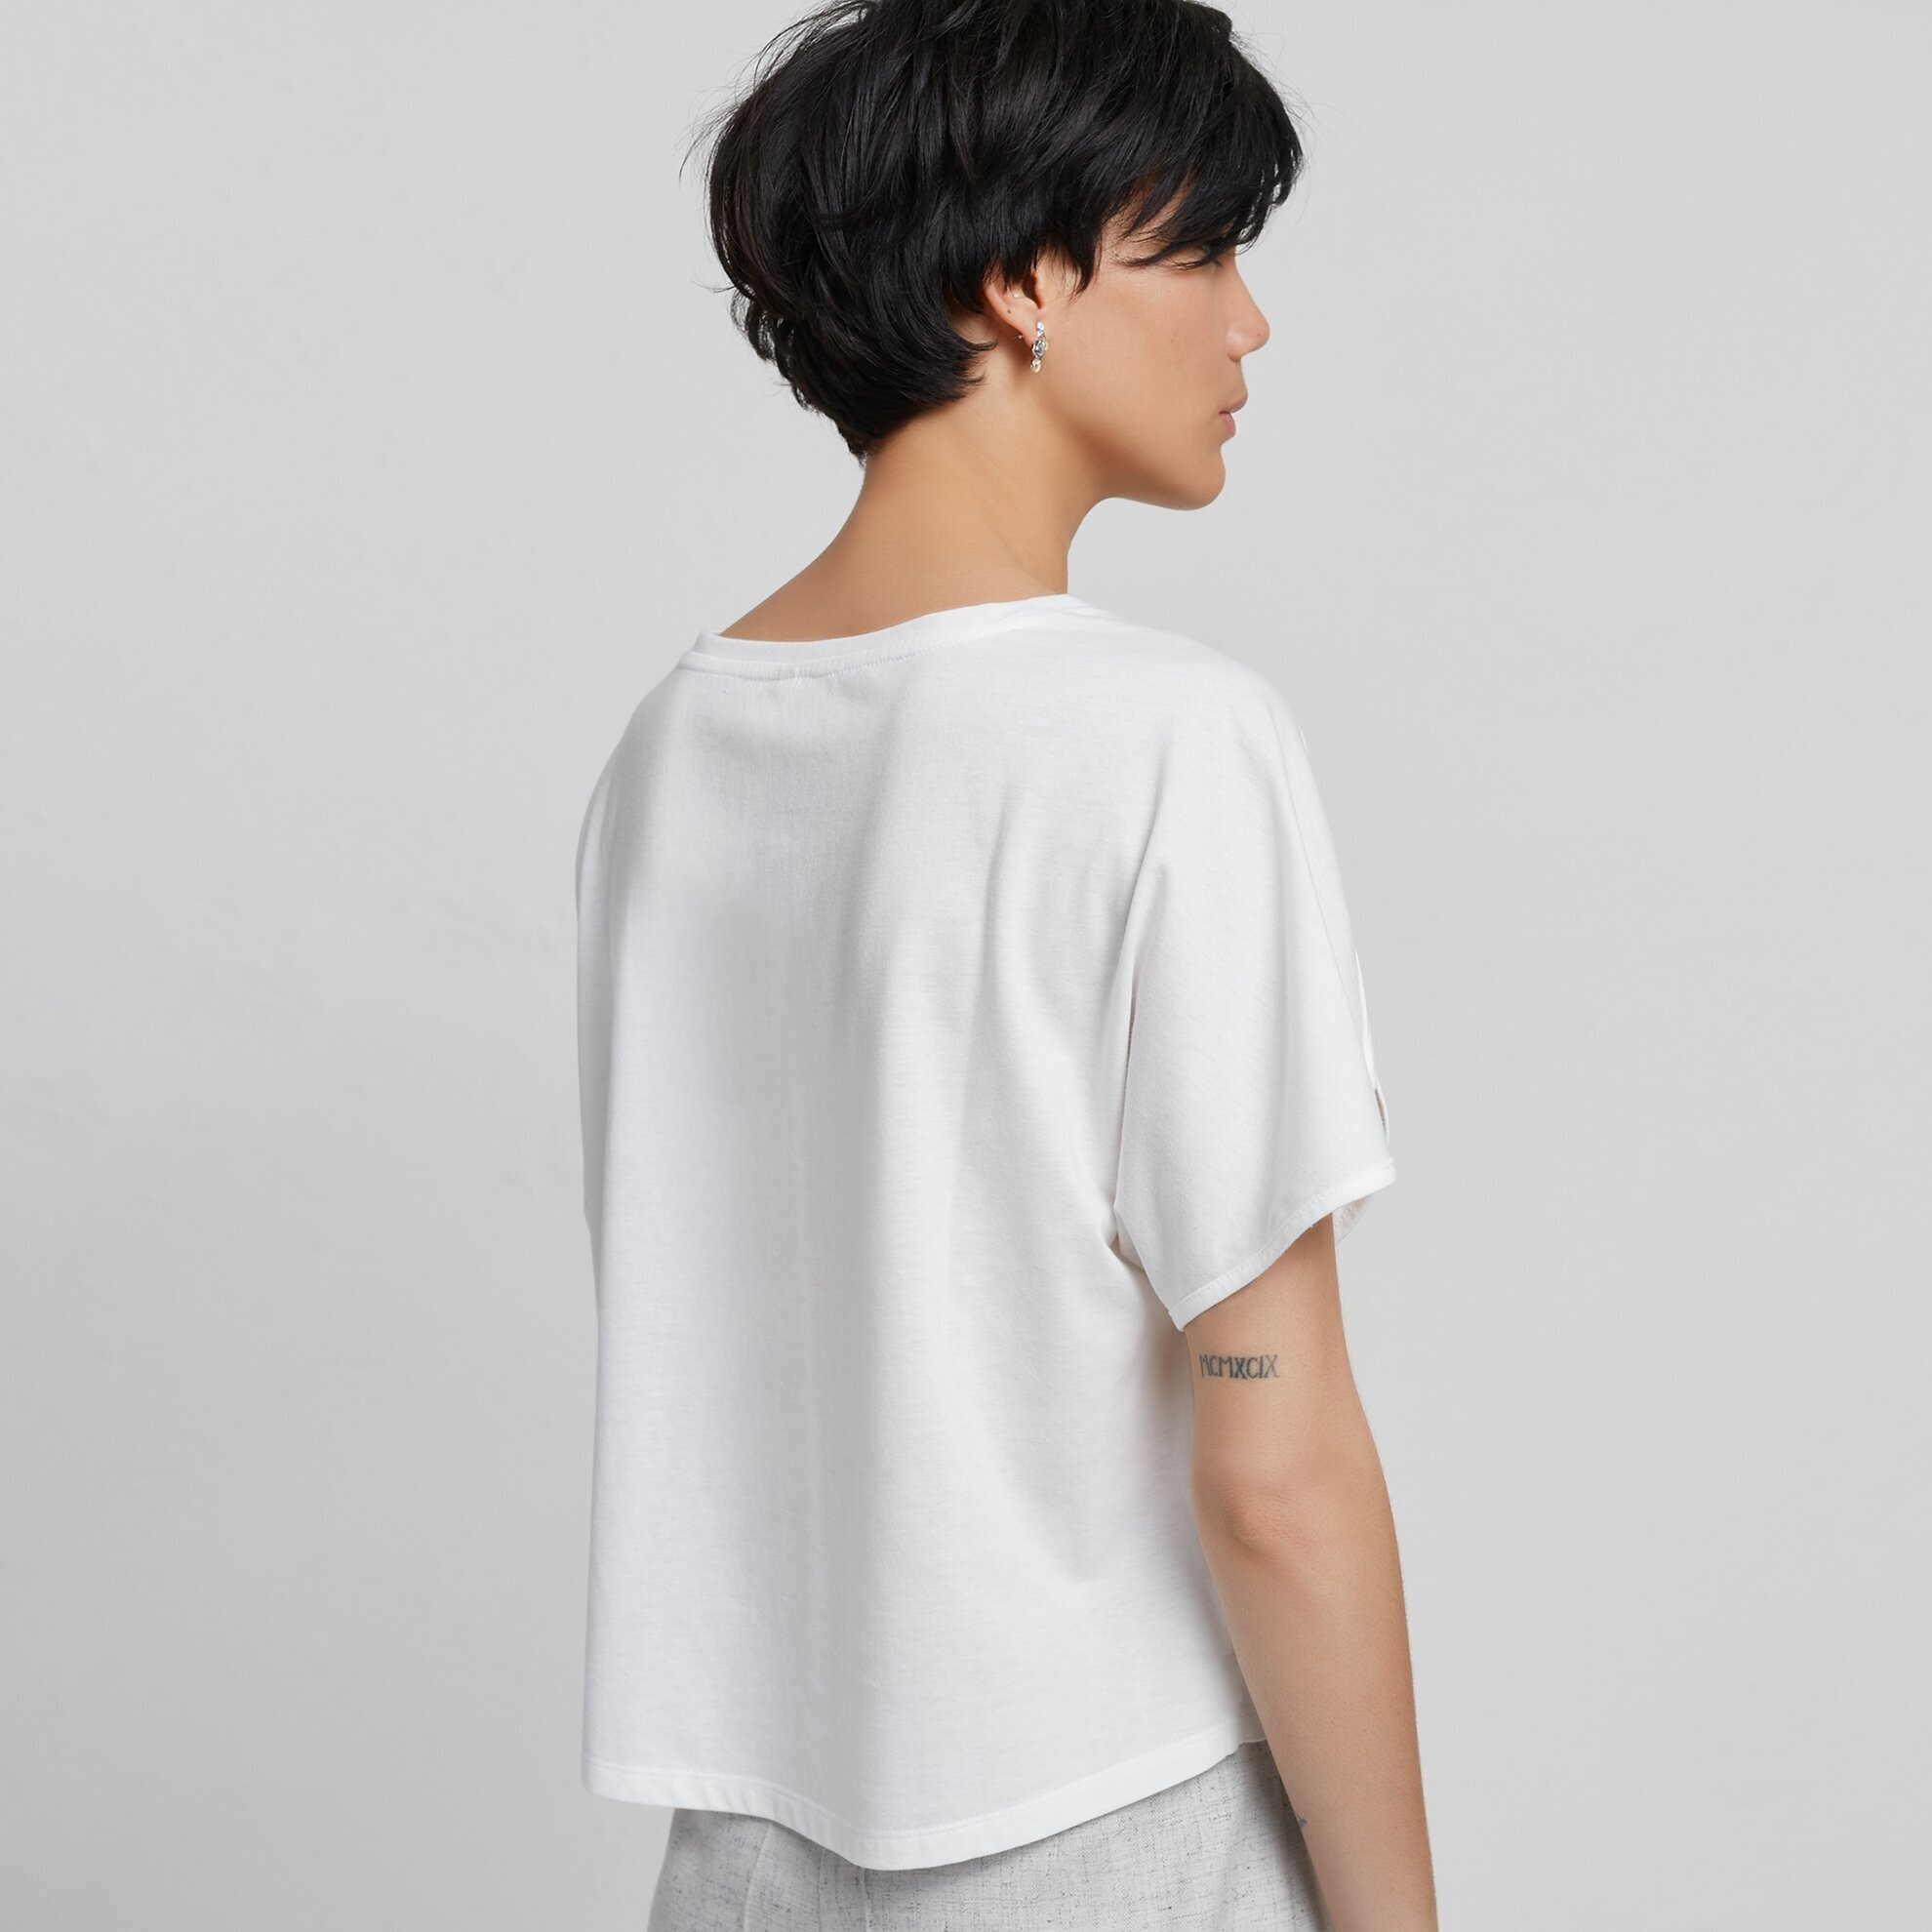 Sleeve Detailed T-Shirt